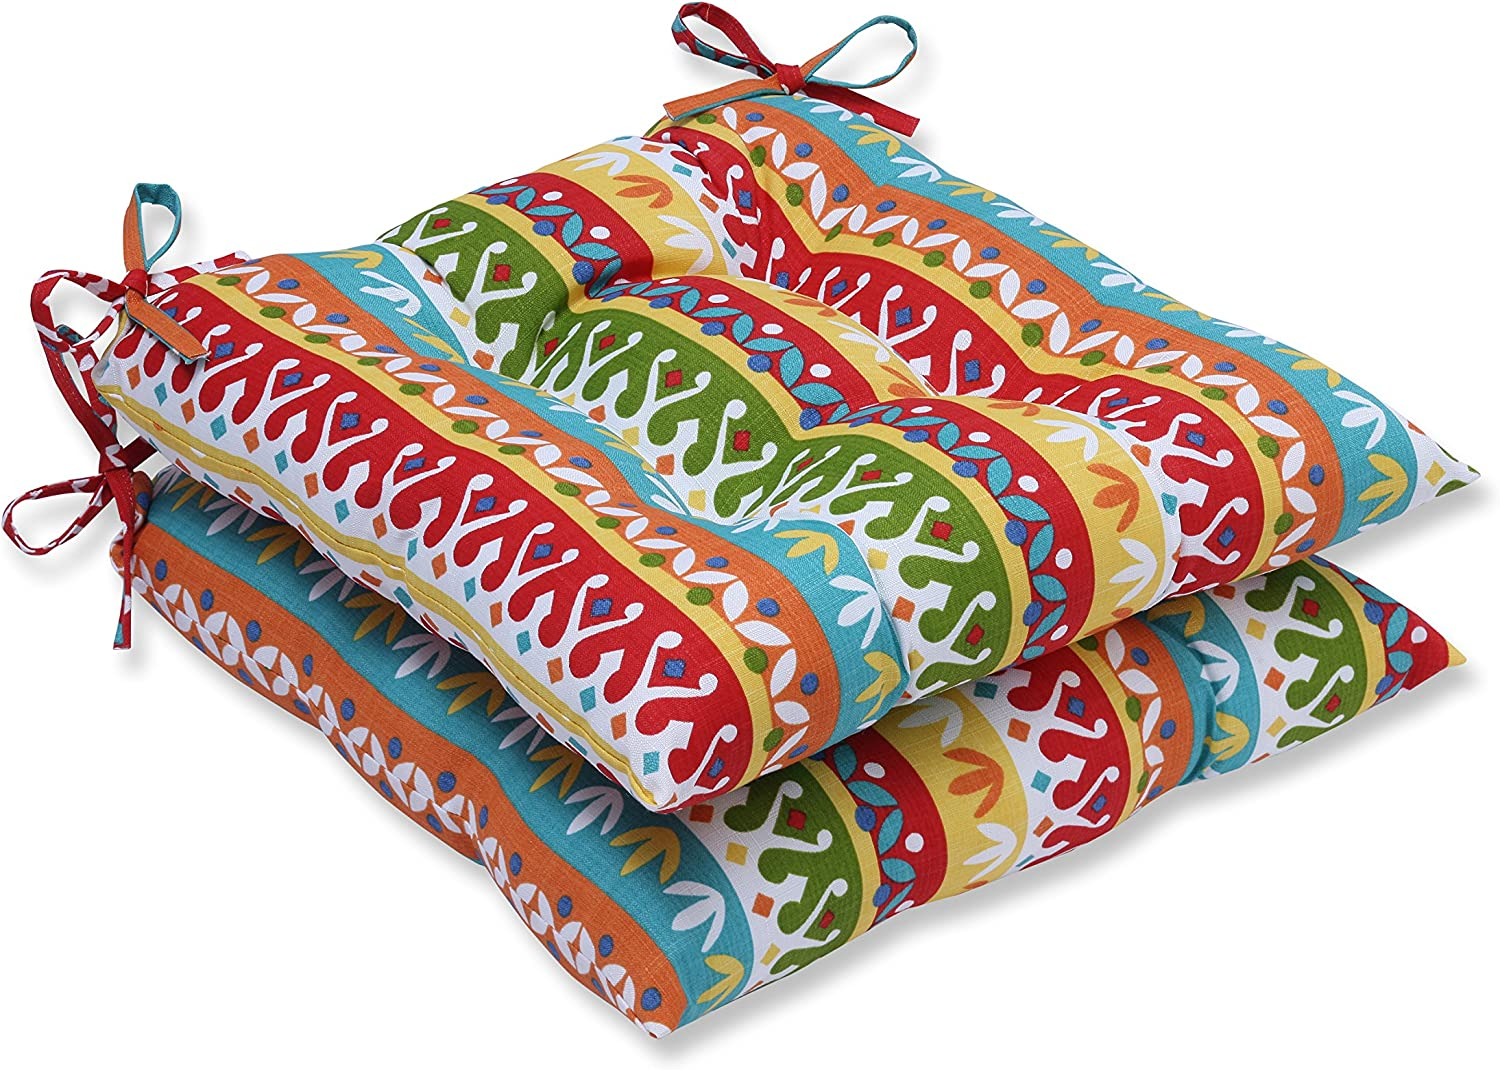 Pillow Perfect Outdoor Indoor Cotrell Garden Wrought Iron Seat Cushion (Set of 2)